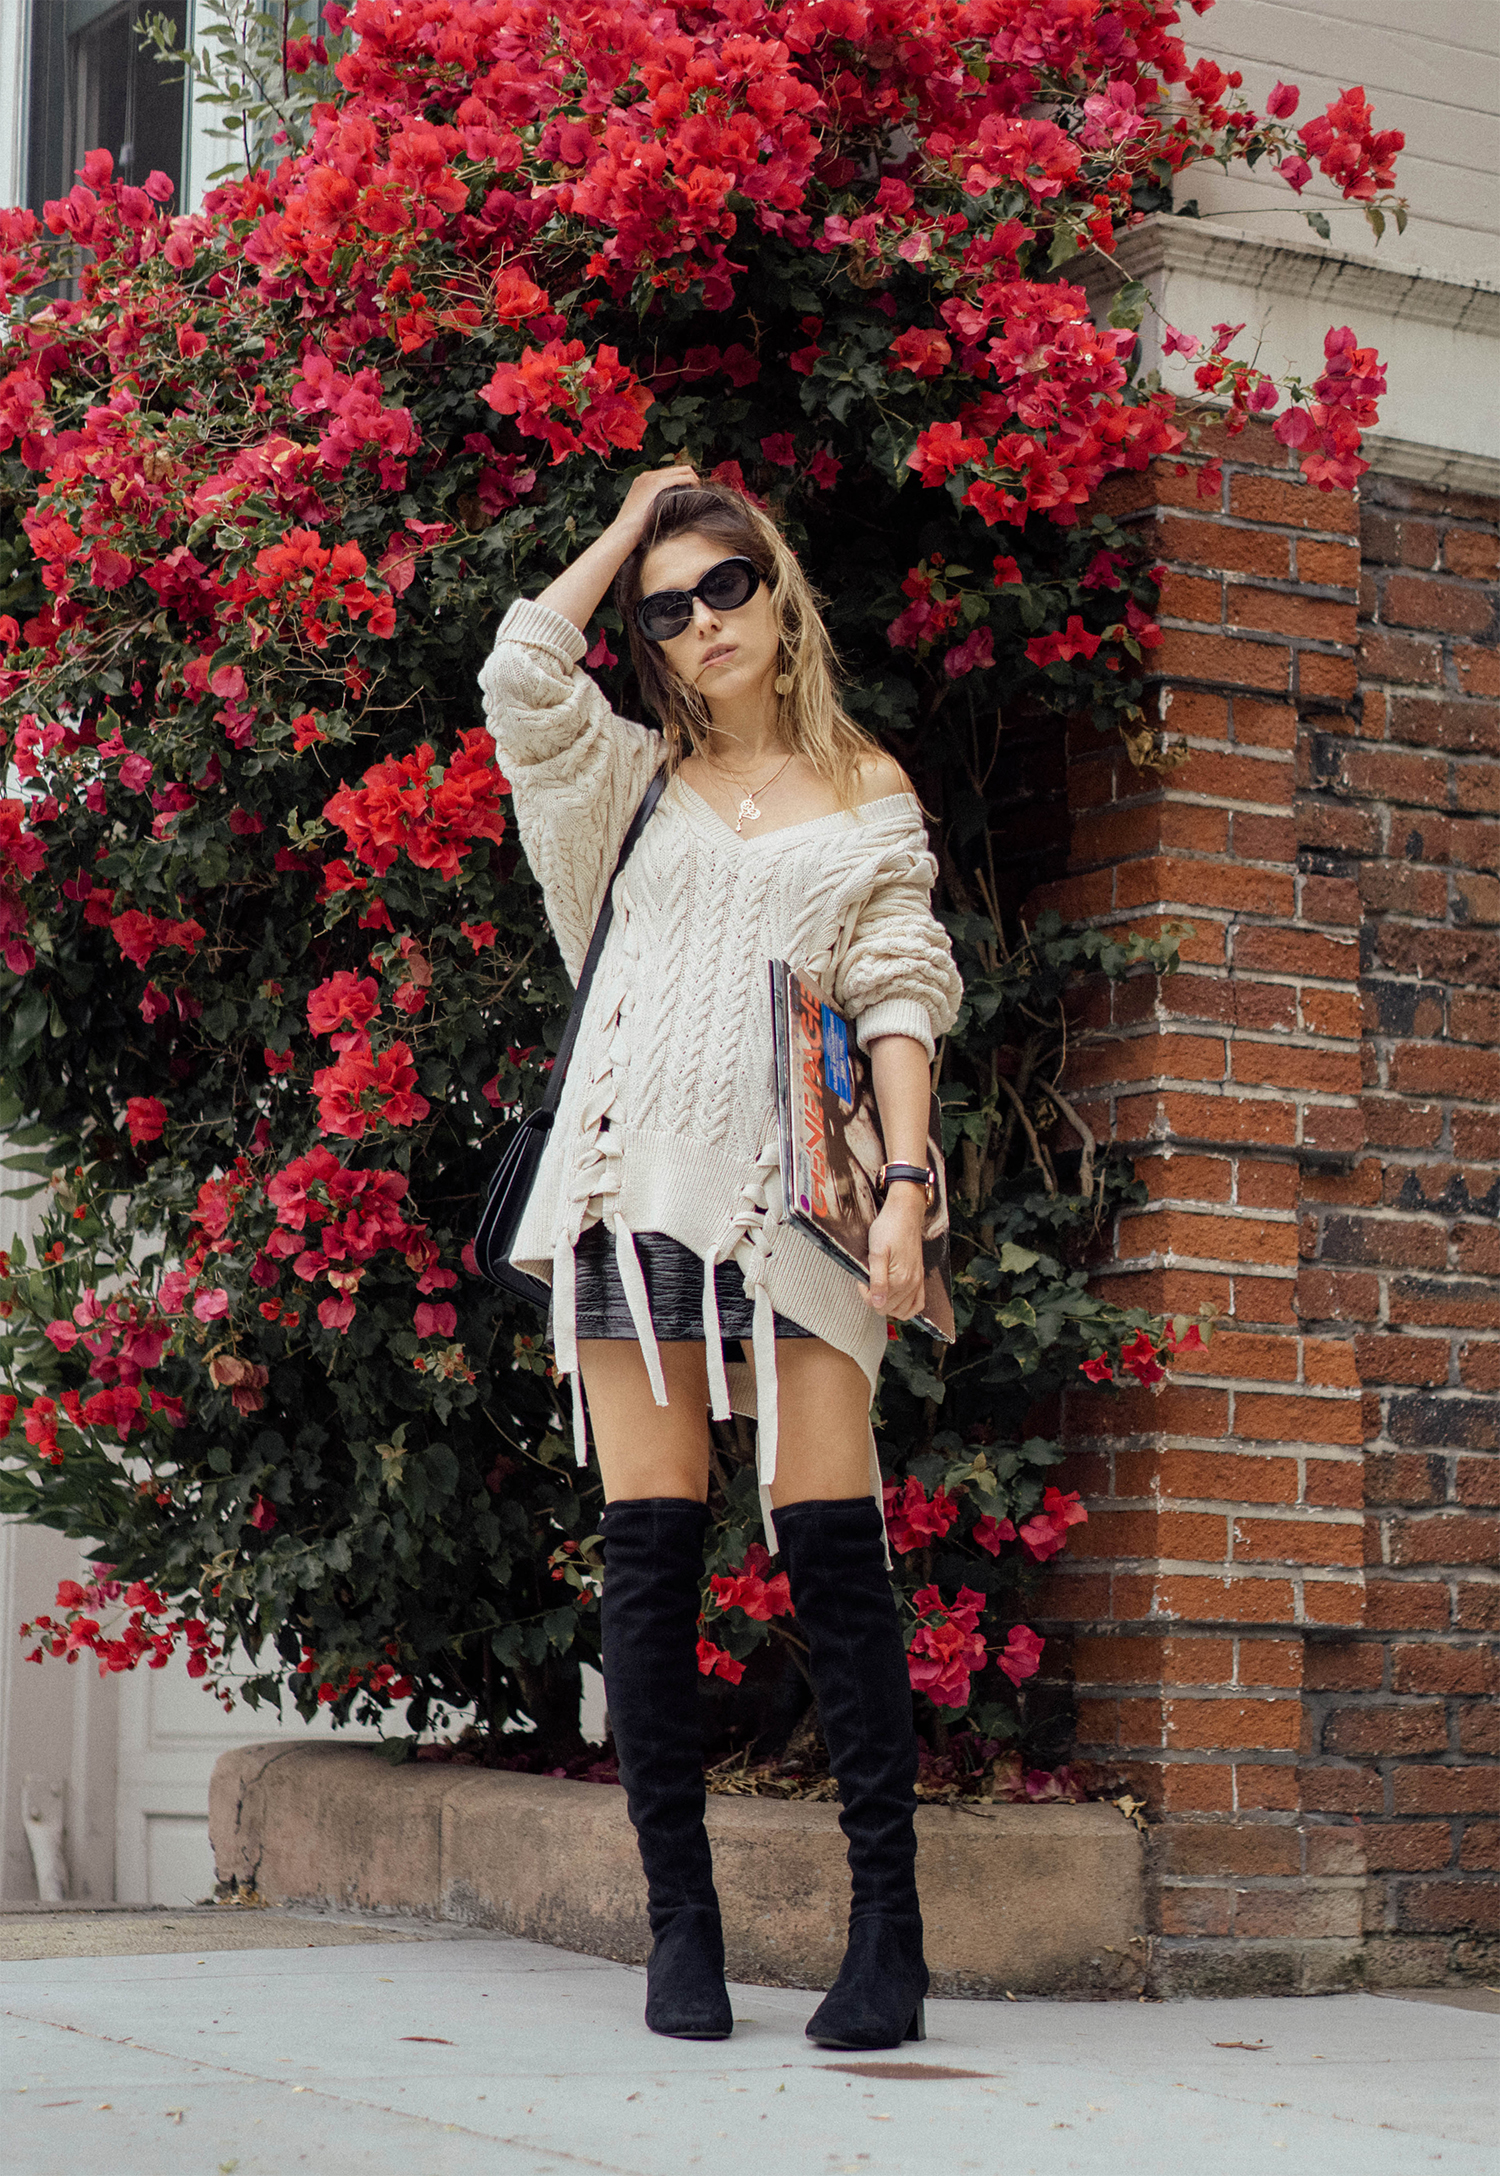 LACE UP SWEATER AND VINYL SKIRT FOR DAY TO DATE NIGHT